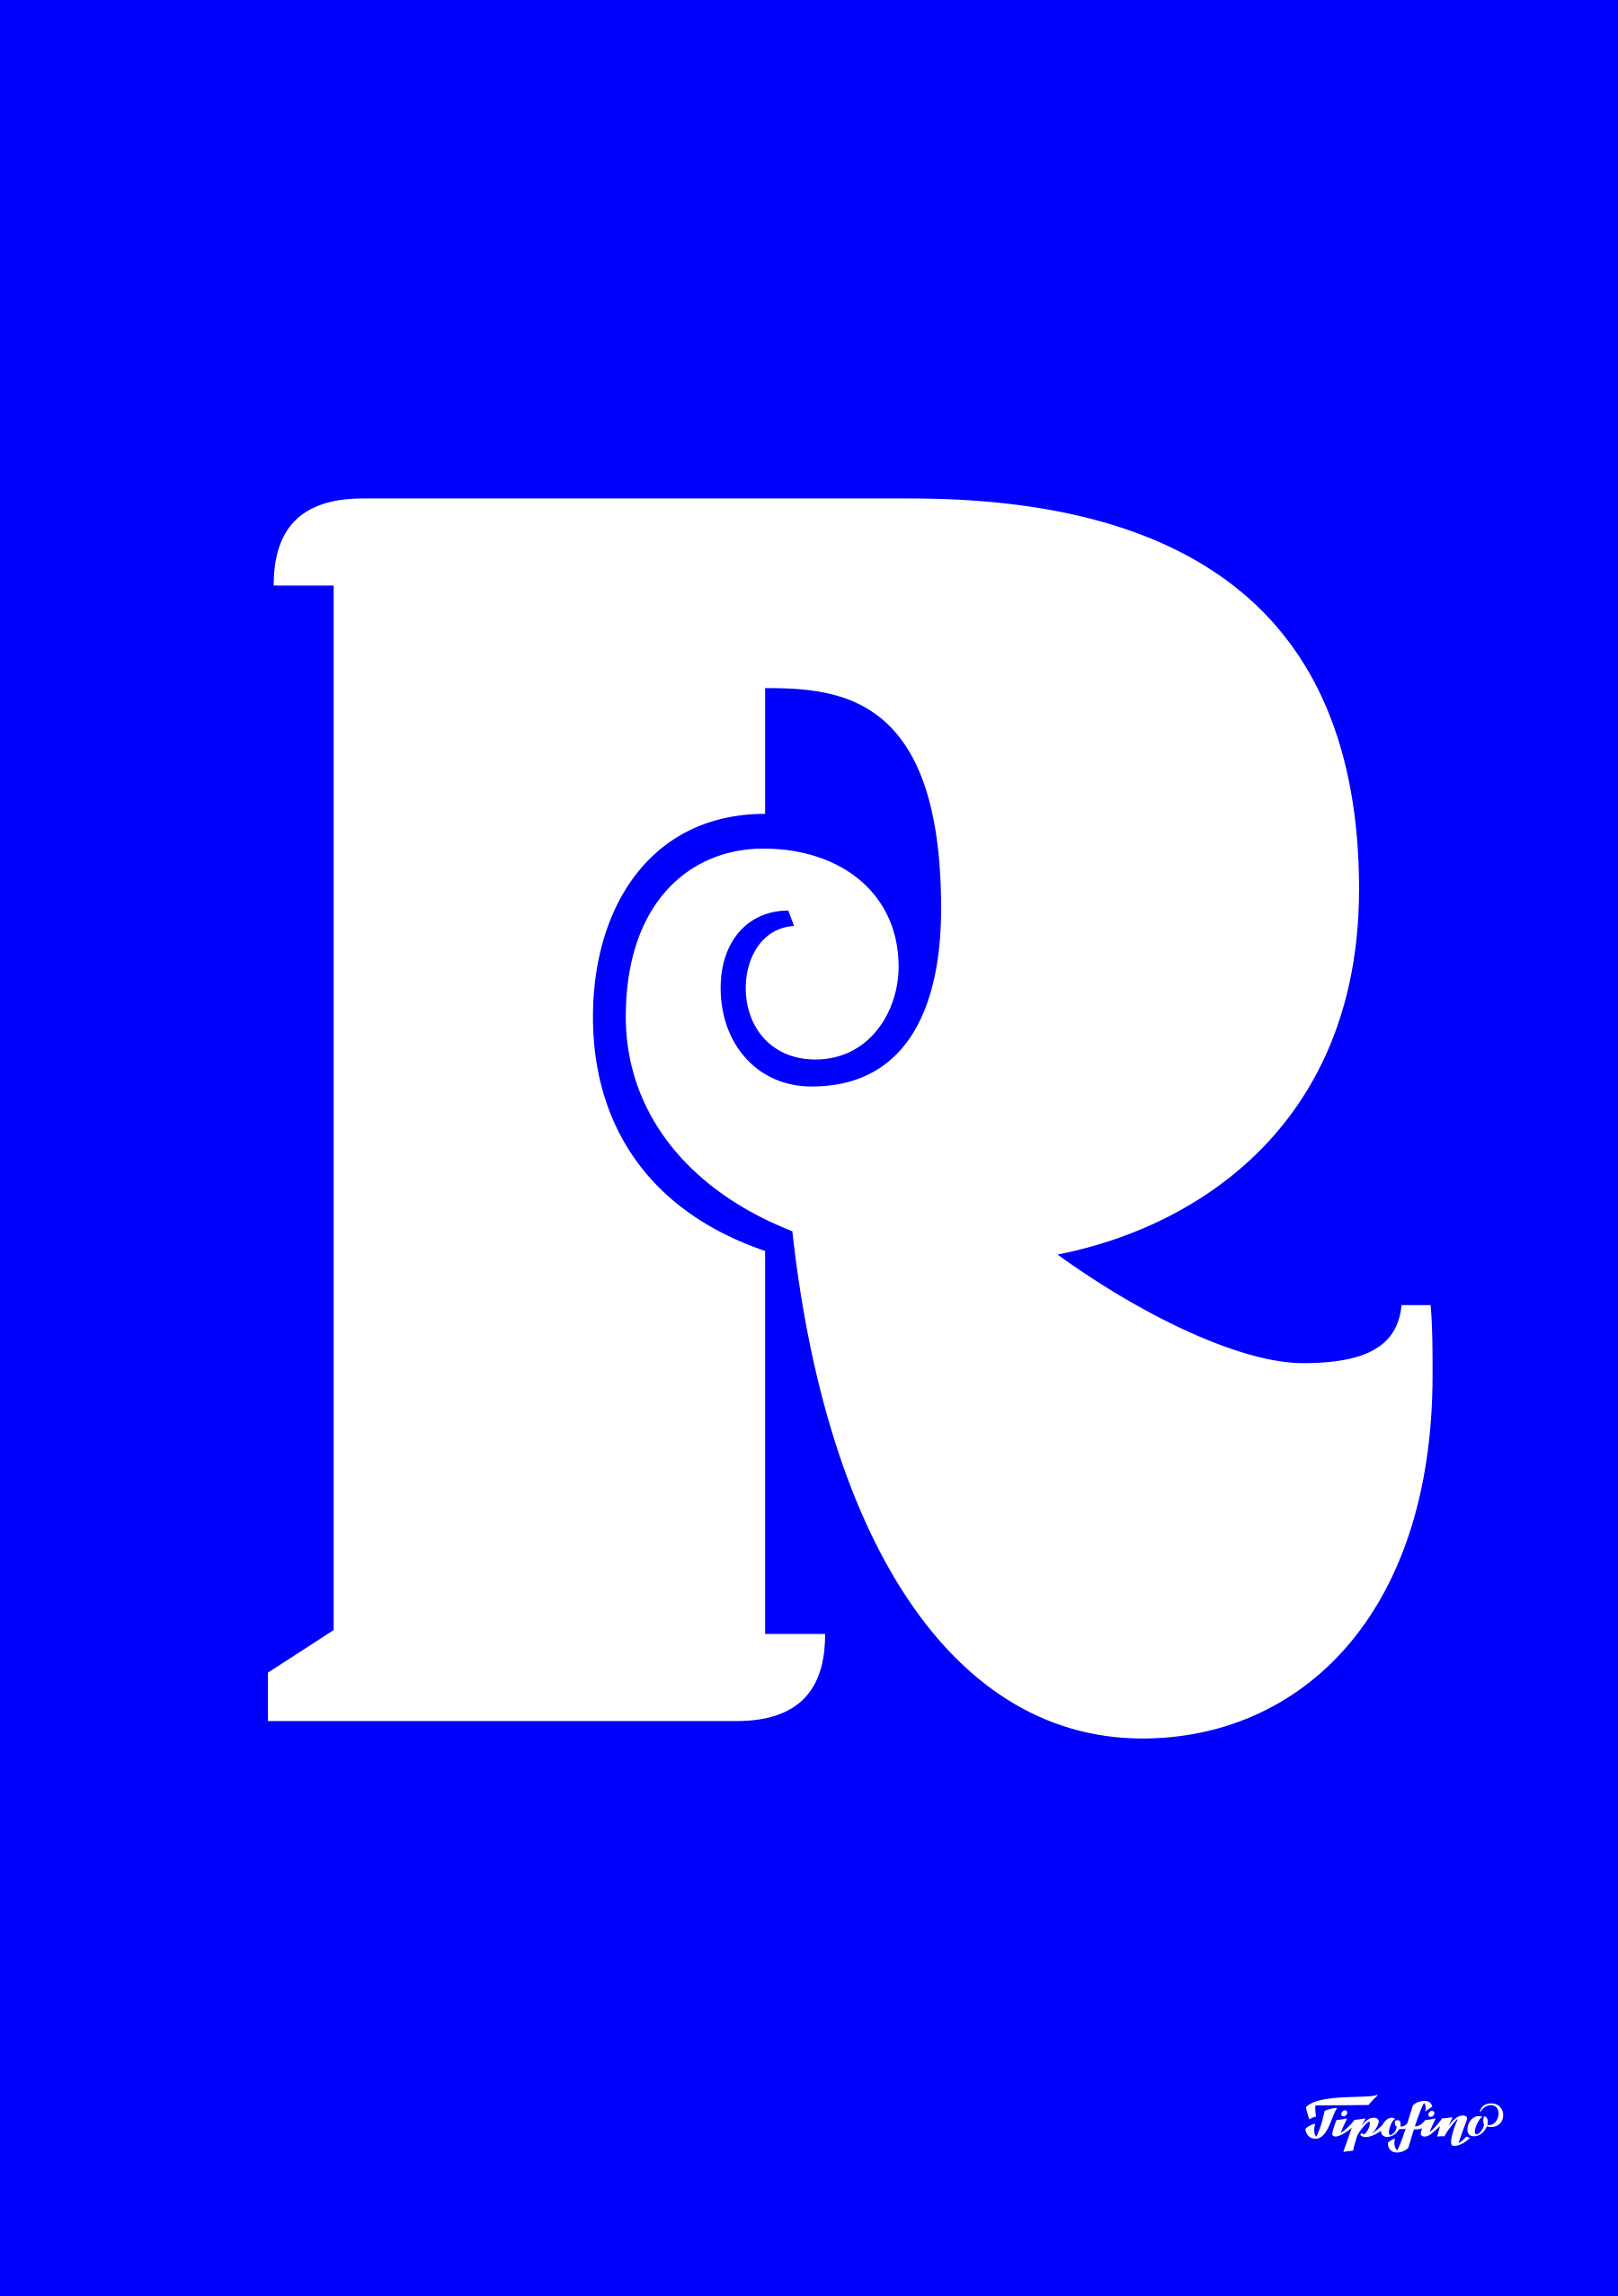 Typographic Poster: «R» of Qandus for Tipofino